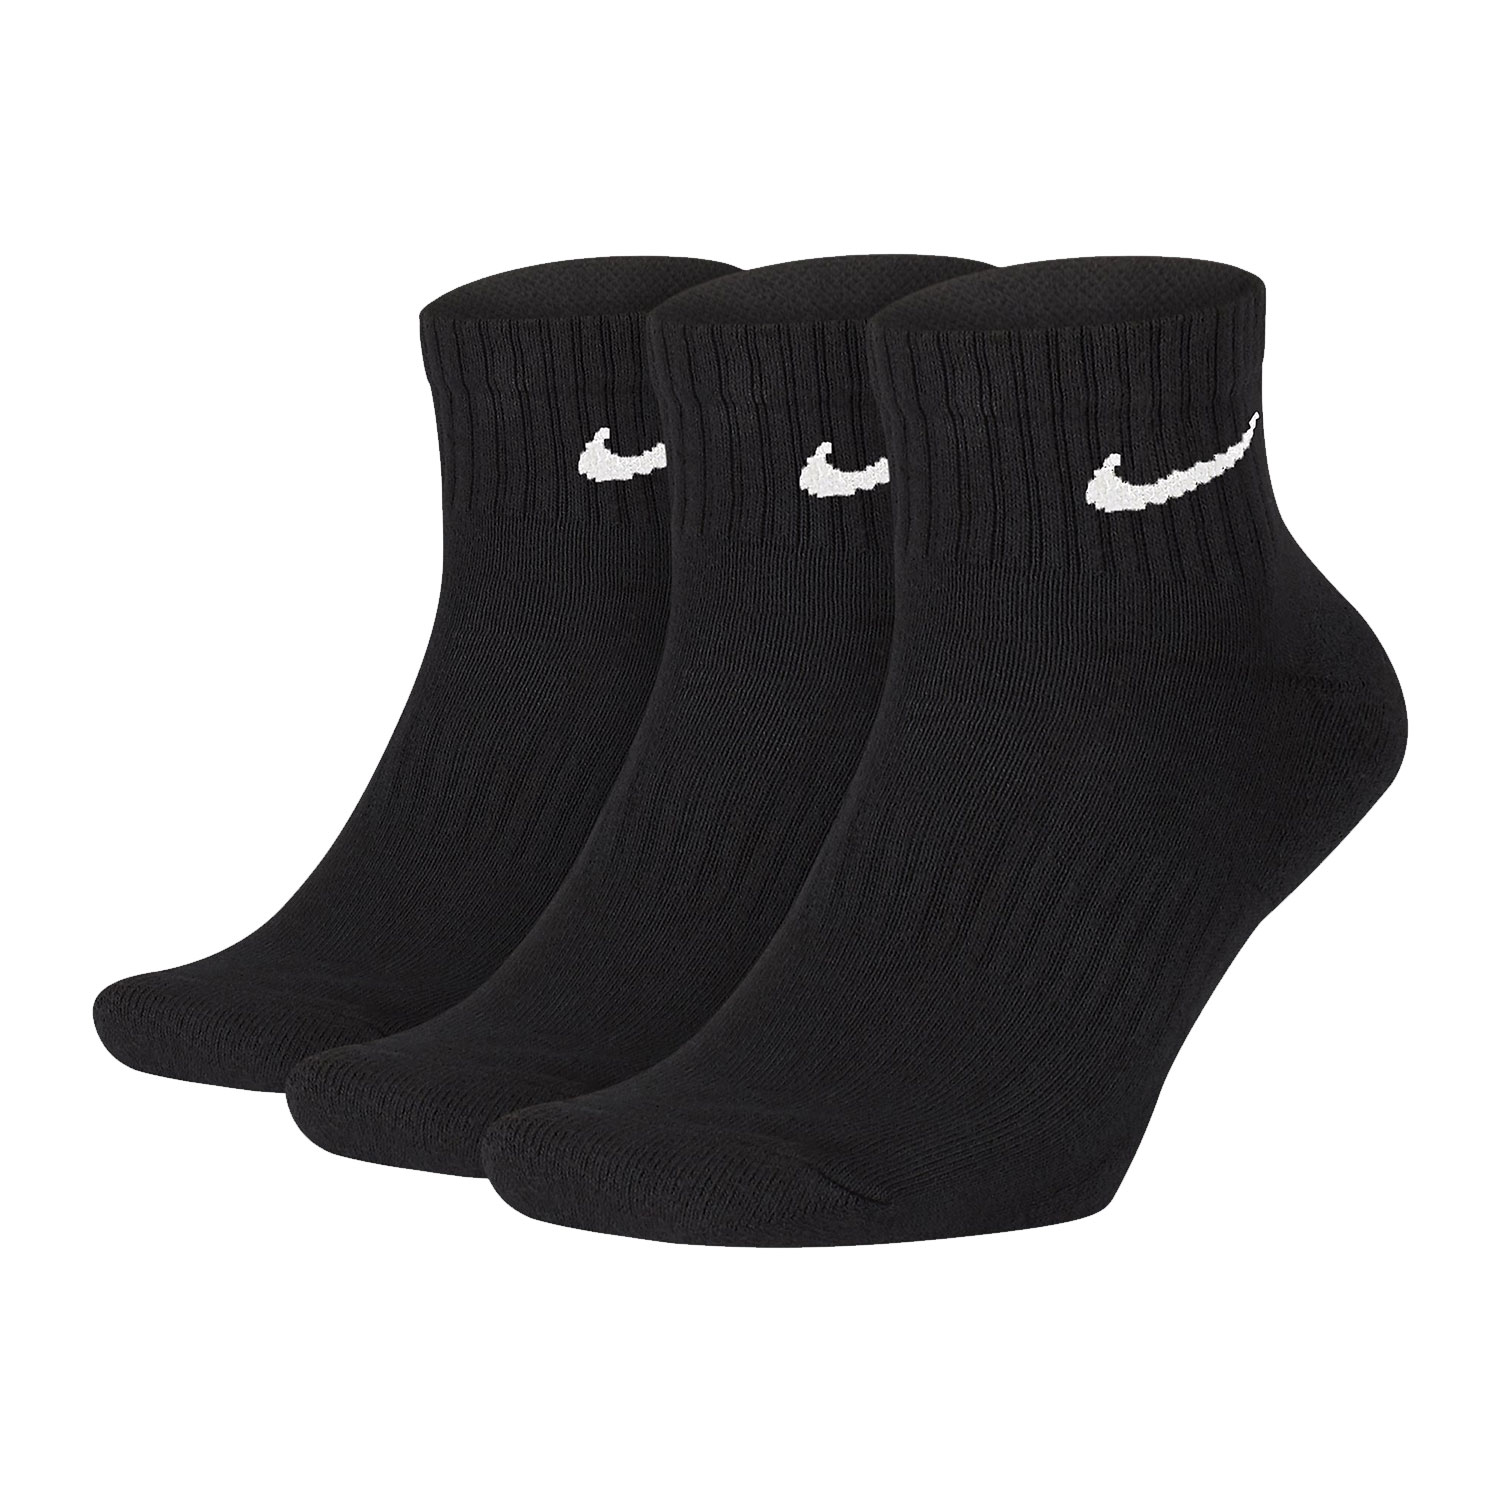 Nike Everyday Cushion Ankle x 3 Calze - Black/White